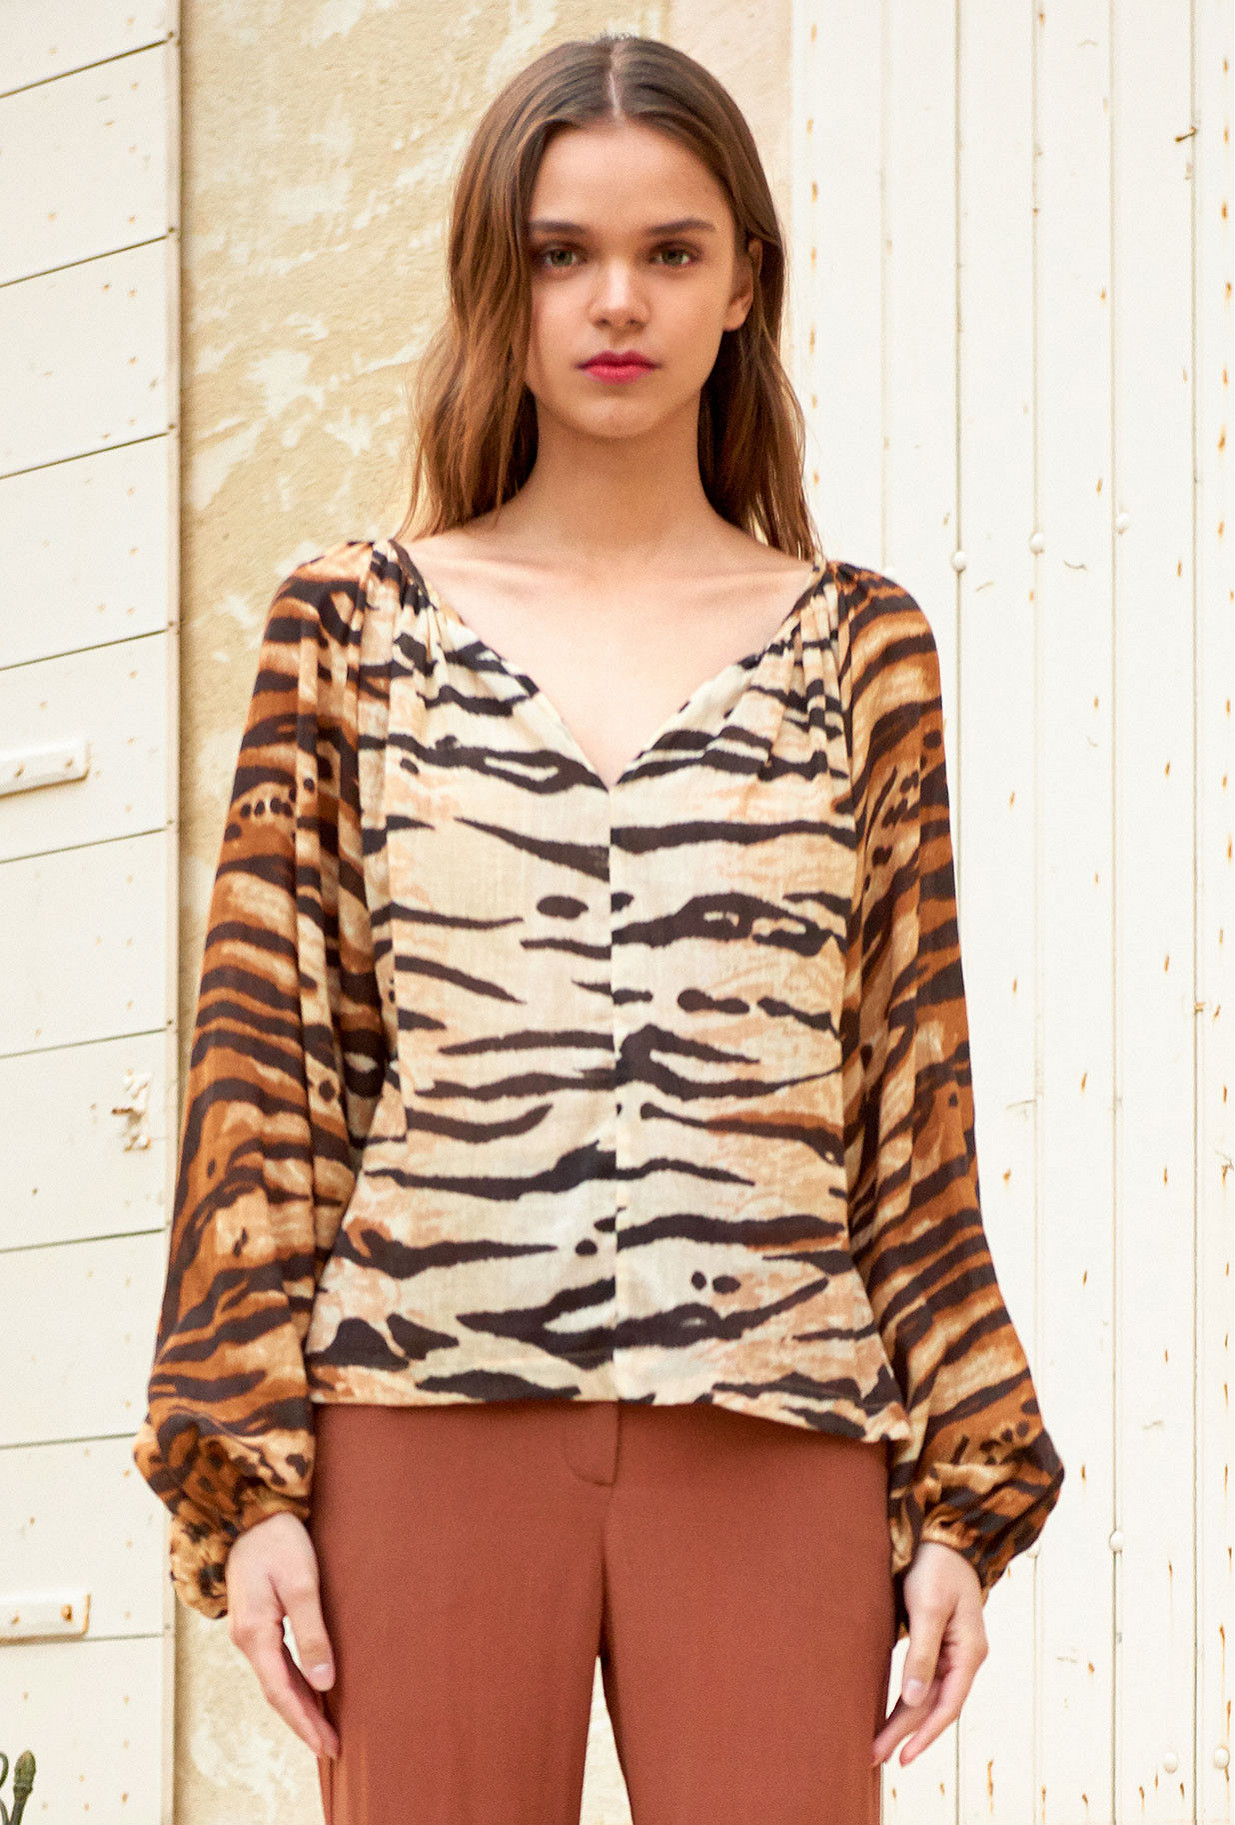 Tiger  Blouse  Birmania Mes demoiselles fashion clothes designer Paris